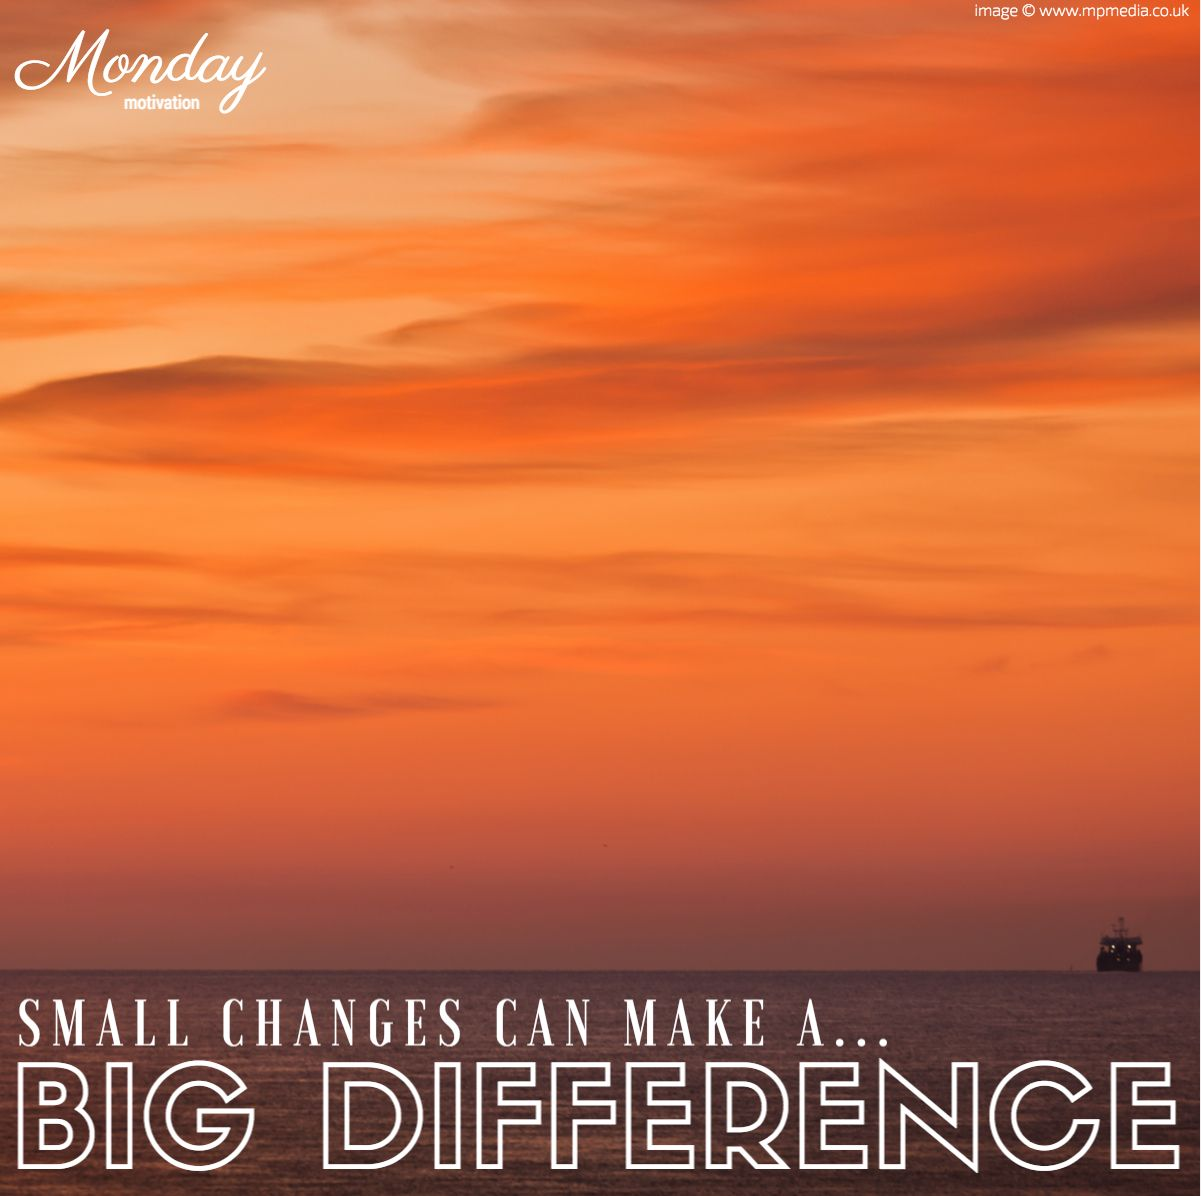 #MondayMotivation by www.mpmedia.co.uk  Small changes in your life can make a BIG difference.  Take the necessary steps to move forward.